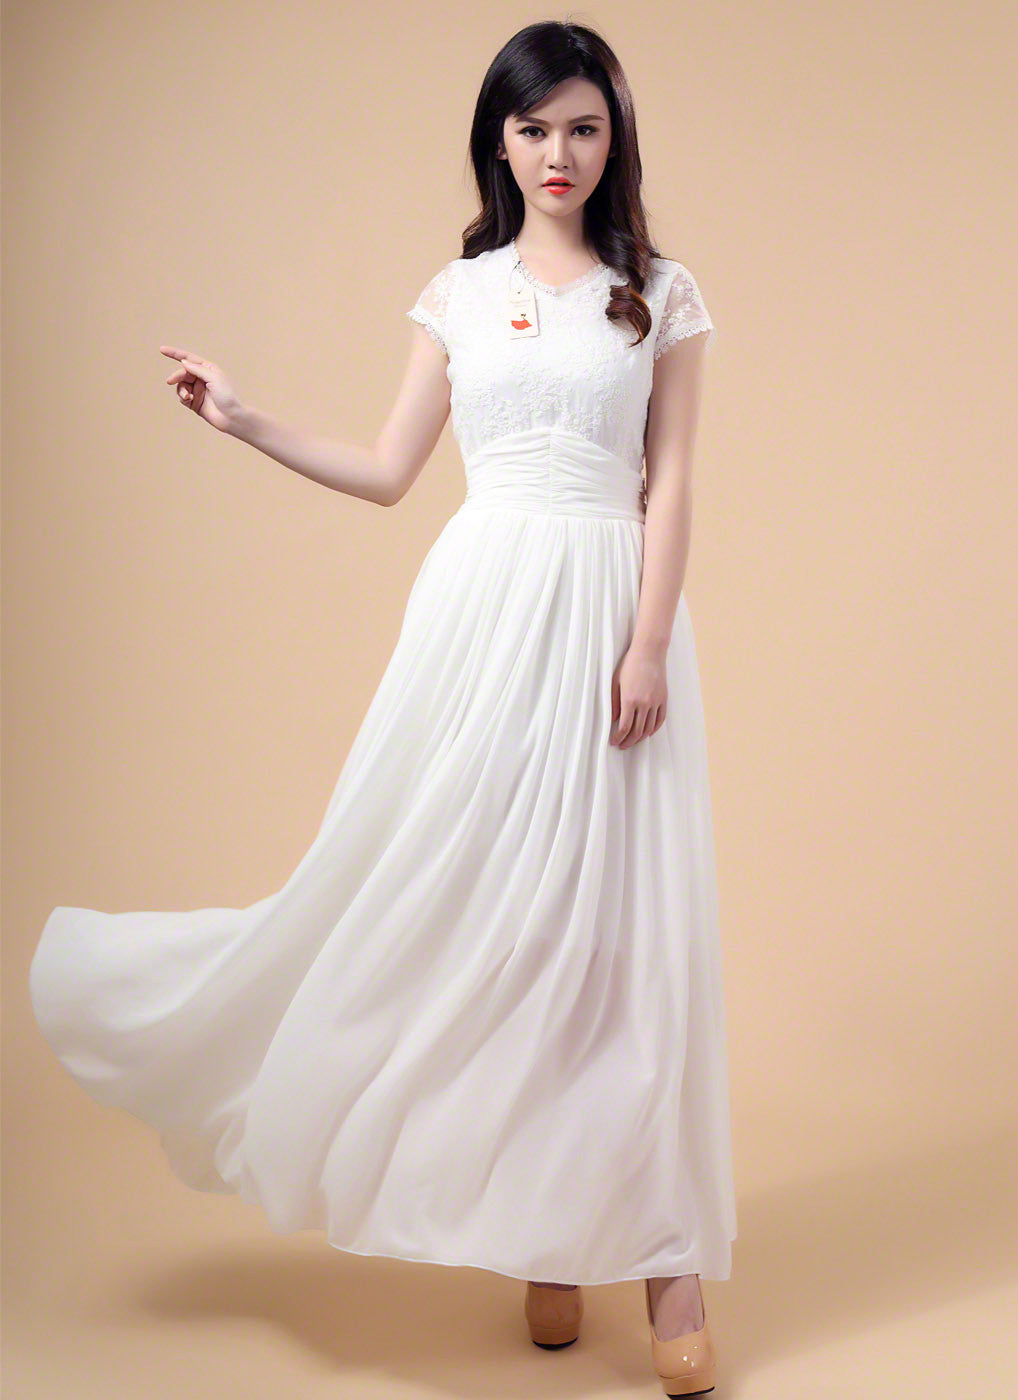 White V Neck Embroidered Lace Wedding Dress with Long Flowing Chiffon  Skirt  Beach Side Lace 7c38f663d6cd